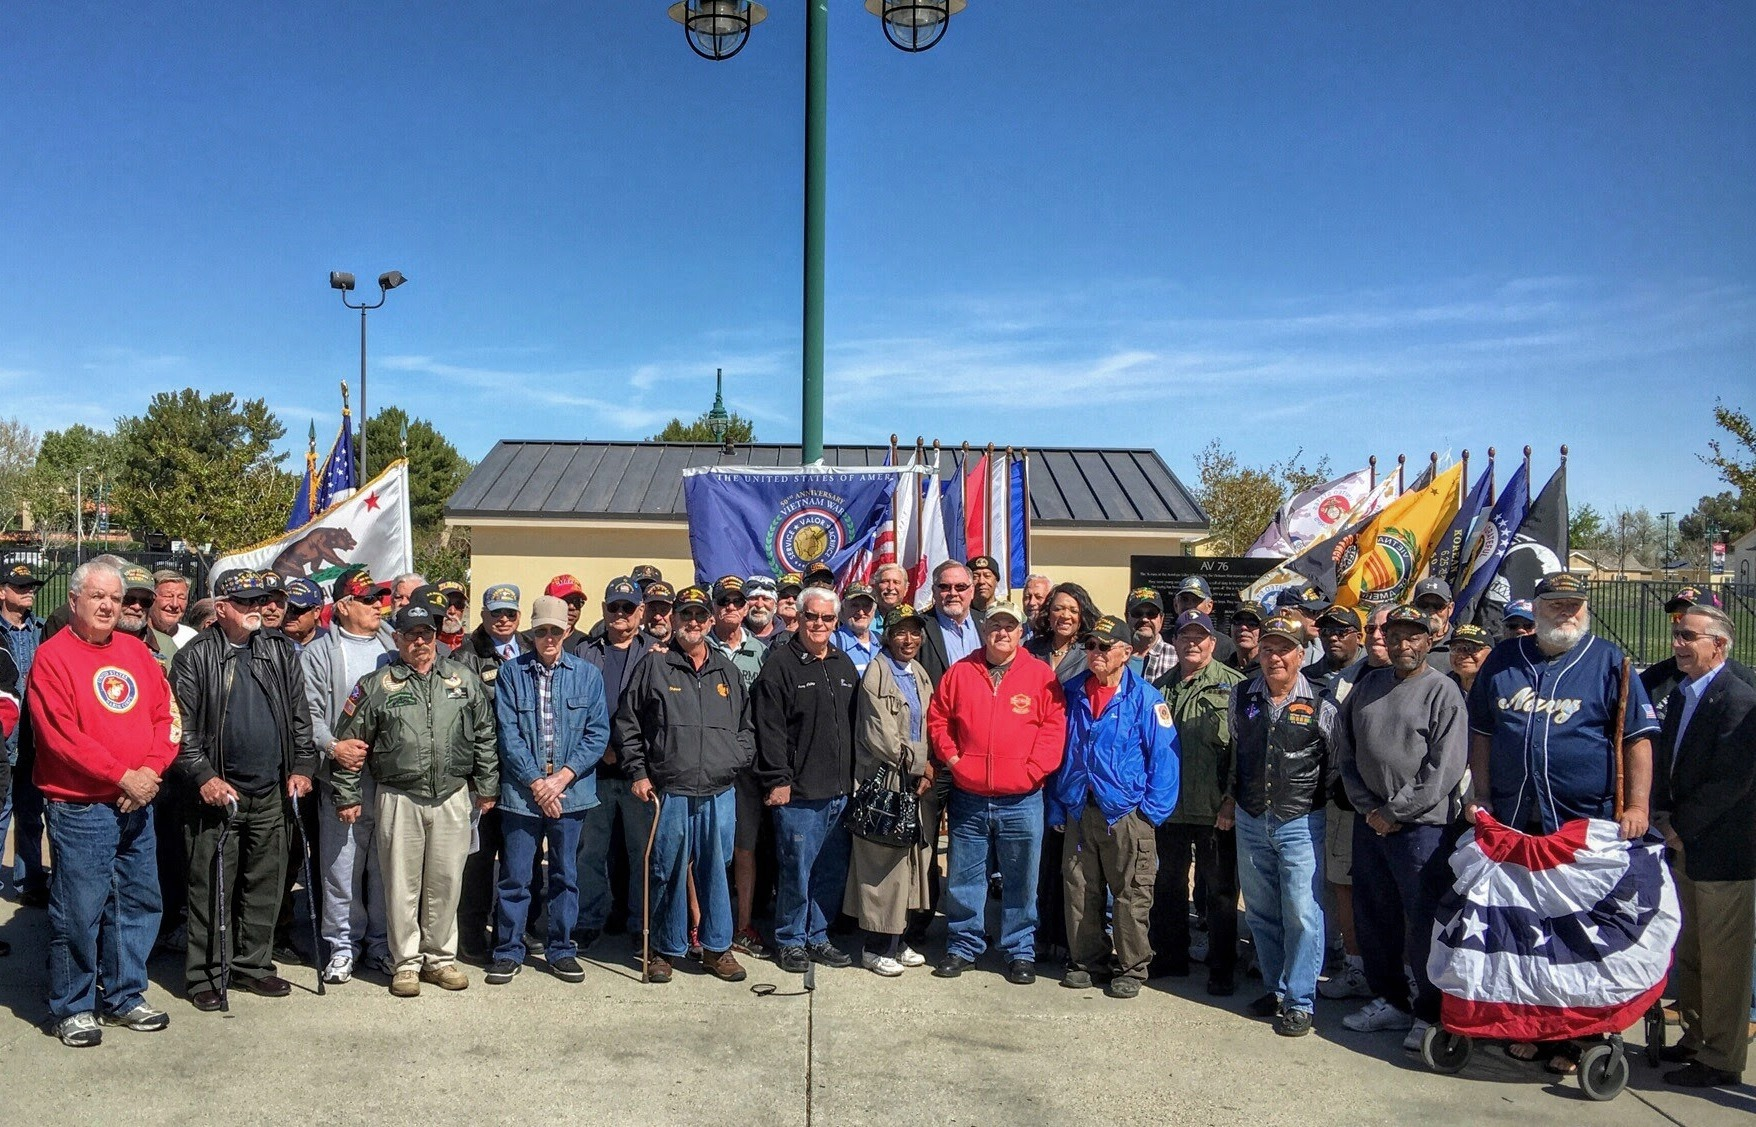 Vietnam Veterans group photo 3-23-16